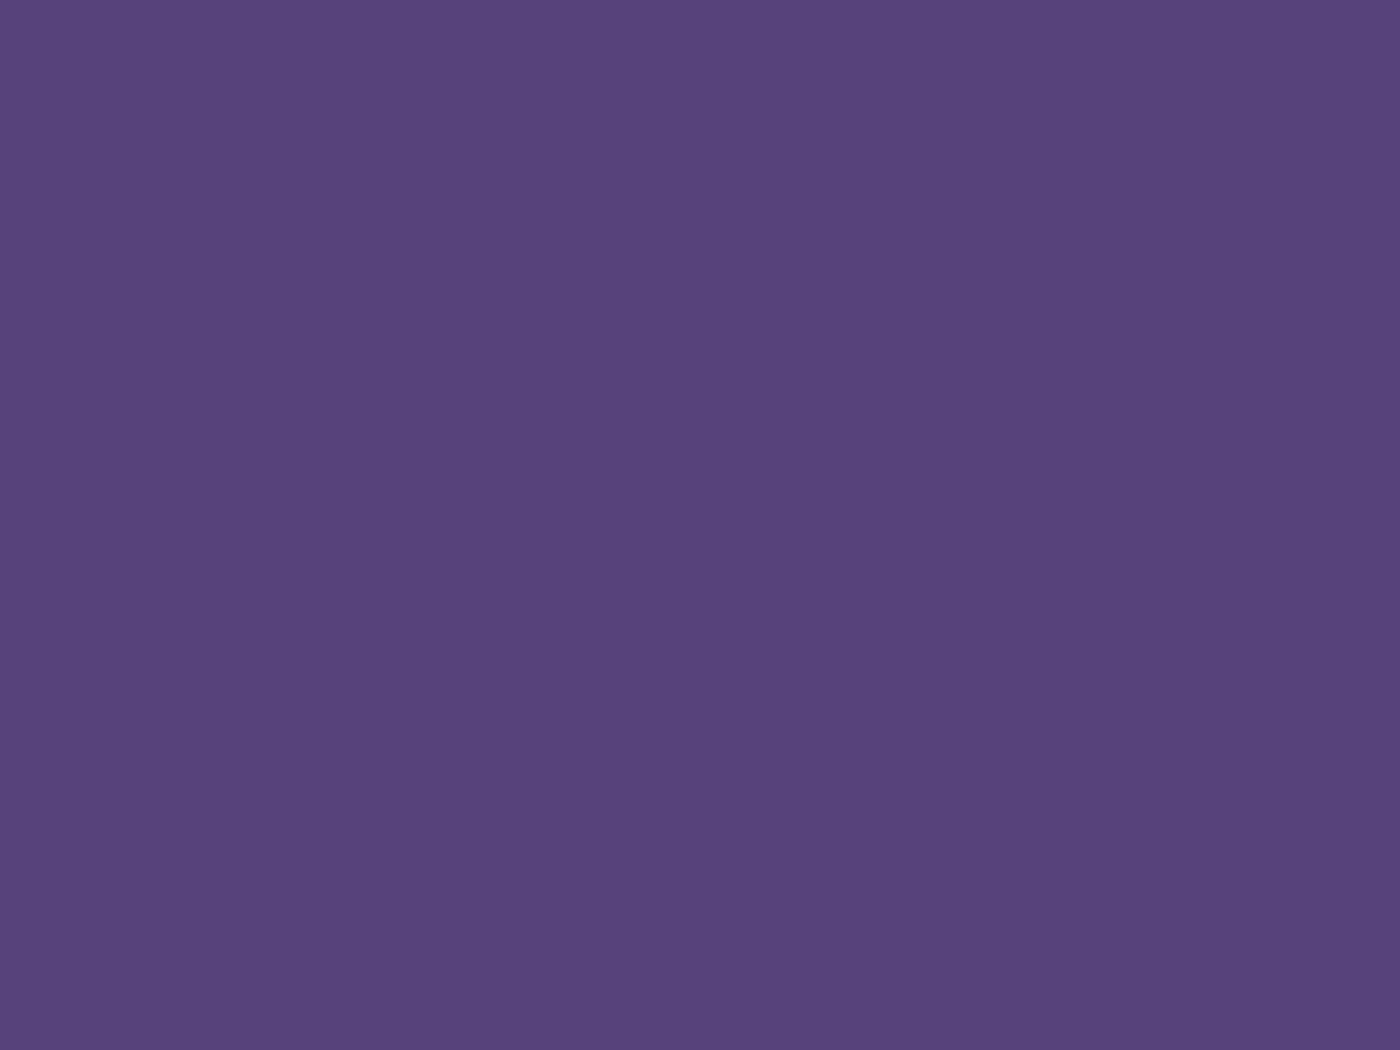 1400x1050 Cyber Grape Solid Color Background